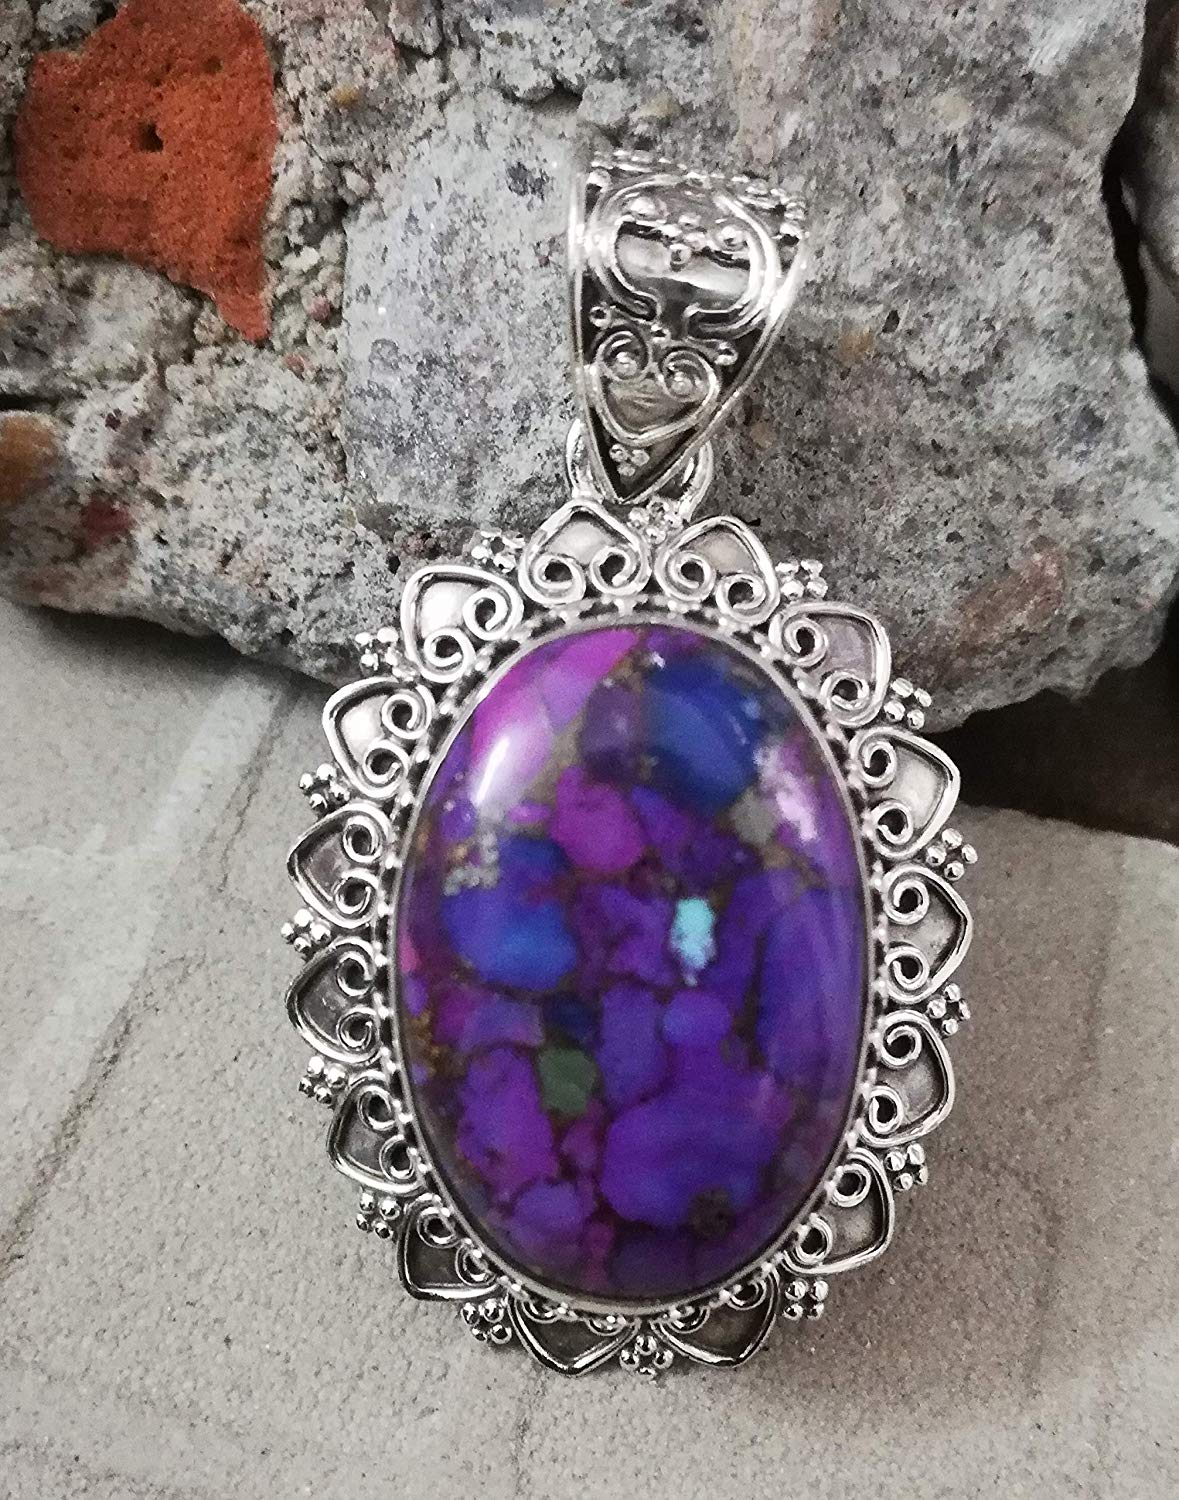 Purple Copper Turquoise Pendant 925 Sterling Silver Personalised Pendant Natural Gemstone Jewelry Exquisite Design Pendant Victorian & Filigree Pendant Charming & Top Pendant Waw Amazing Jewelry Gift